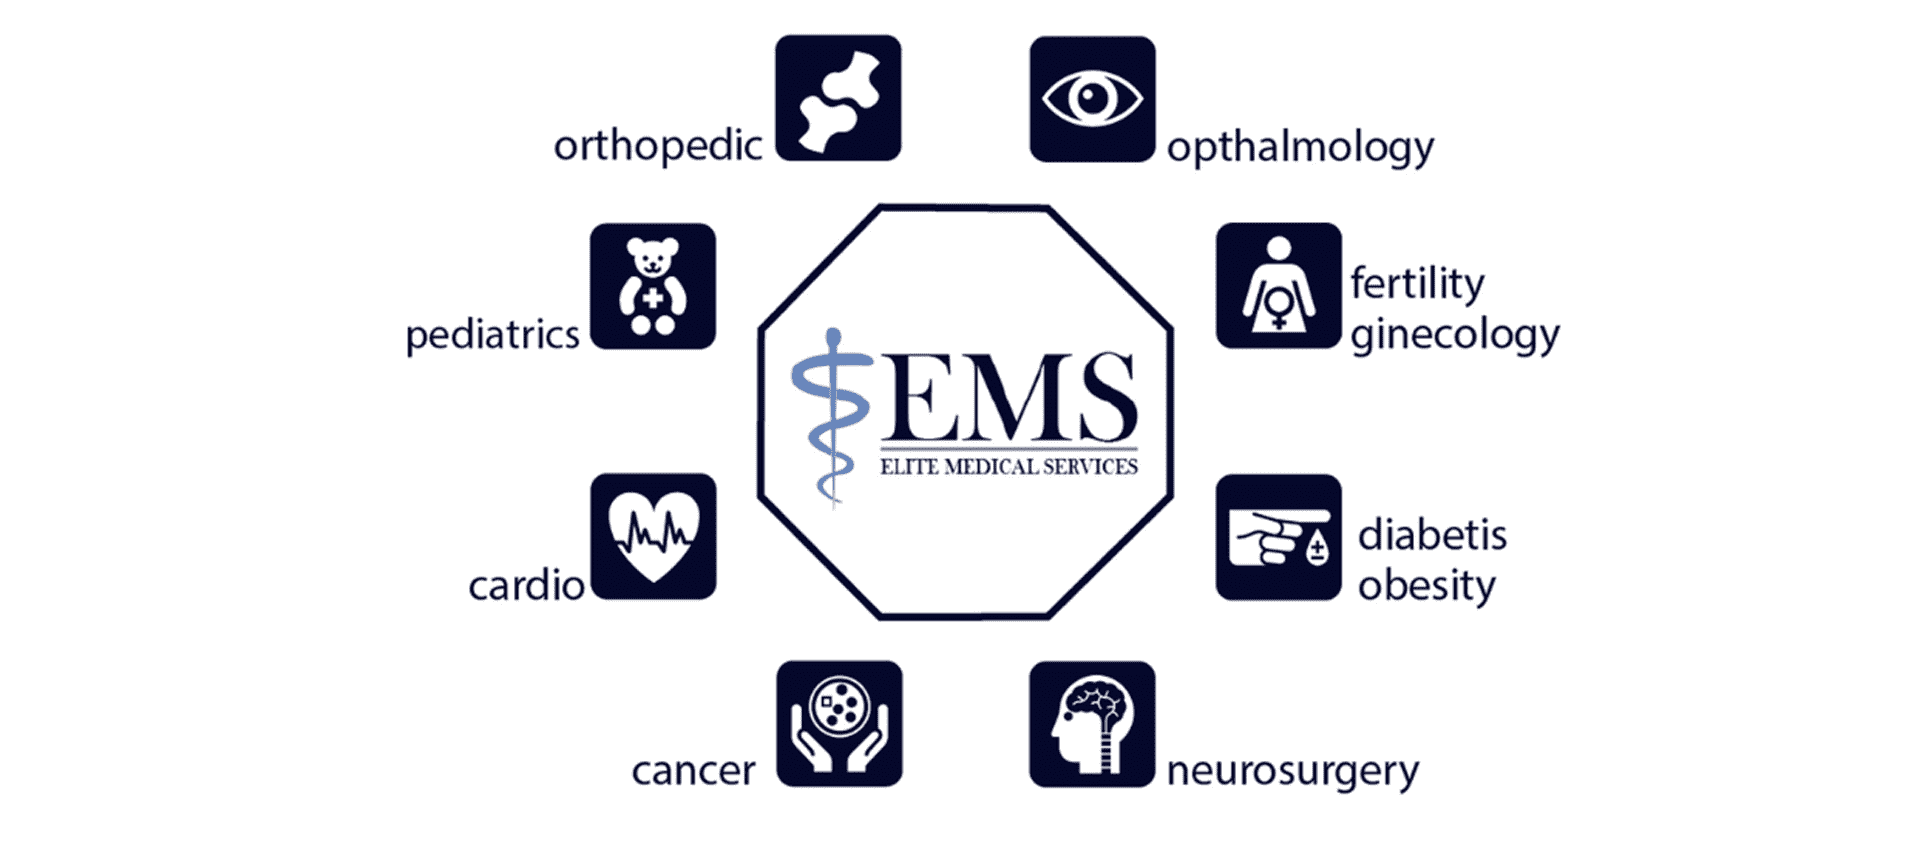 elite medical services portfolio clienti digital compass medical tourism